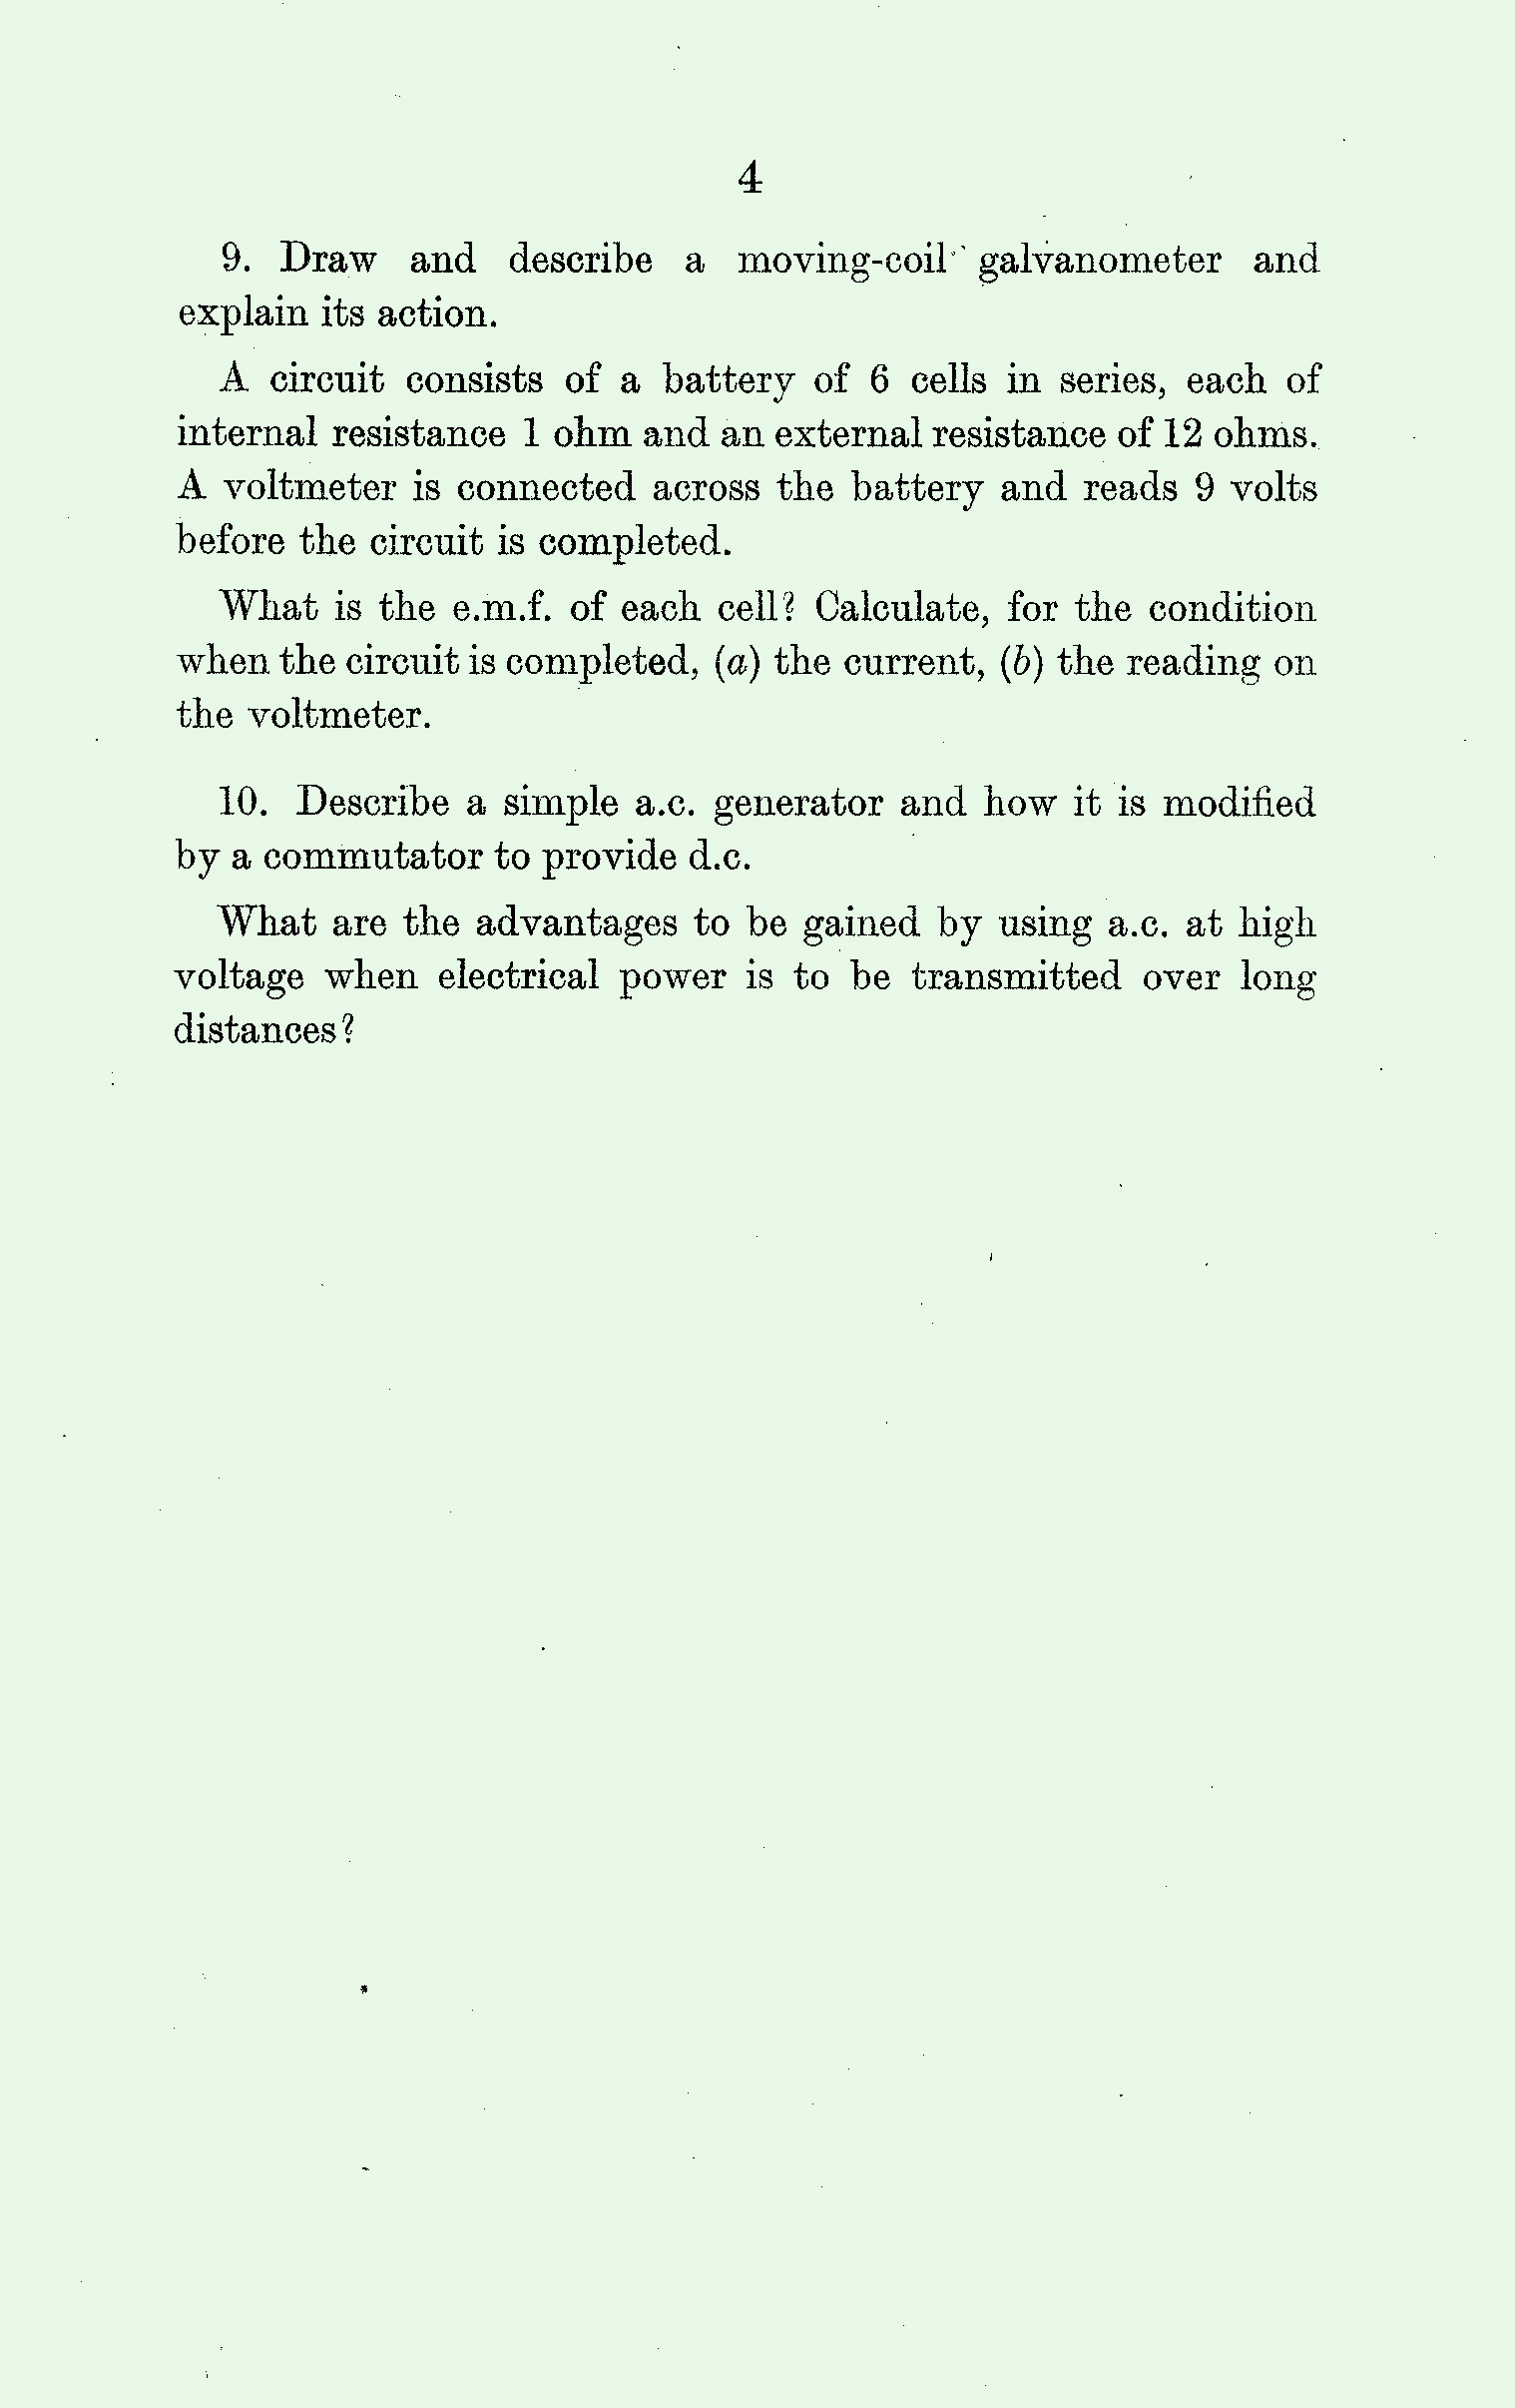 1959 Physics exam page 4